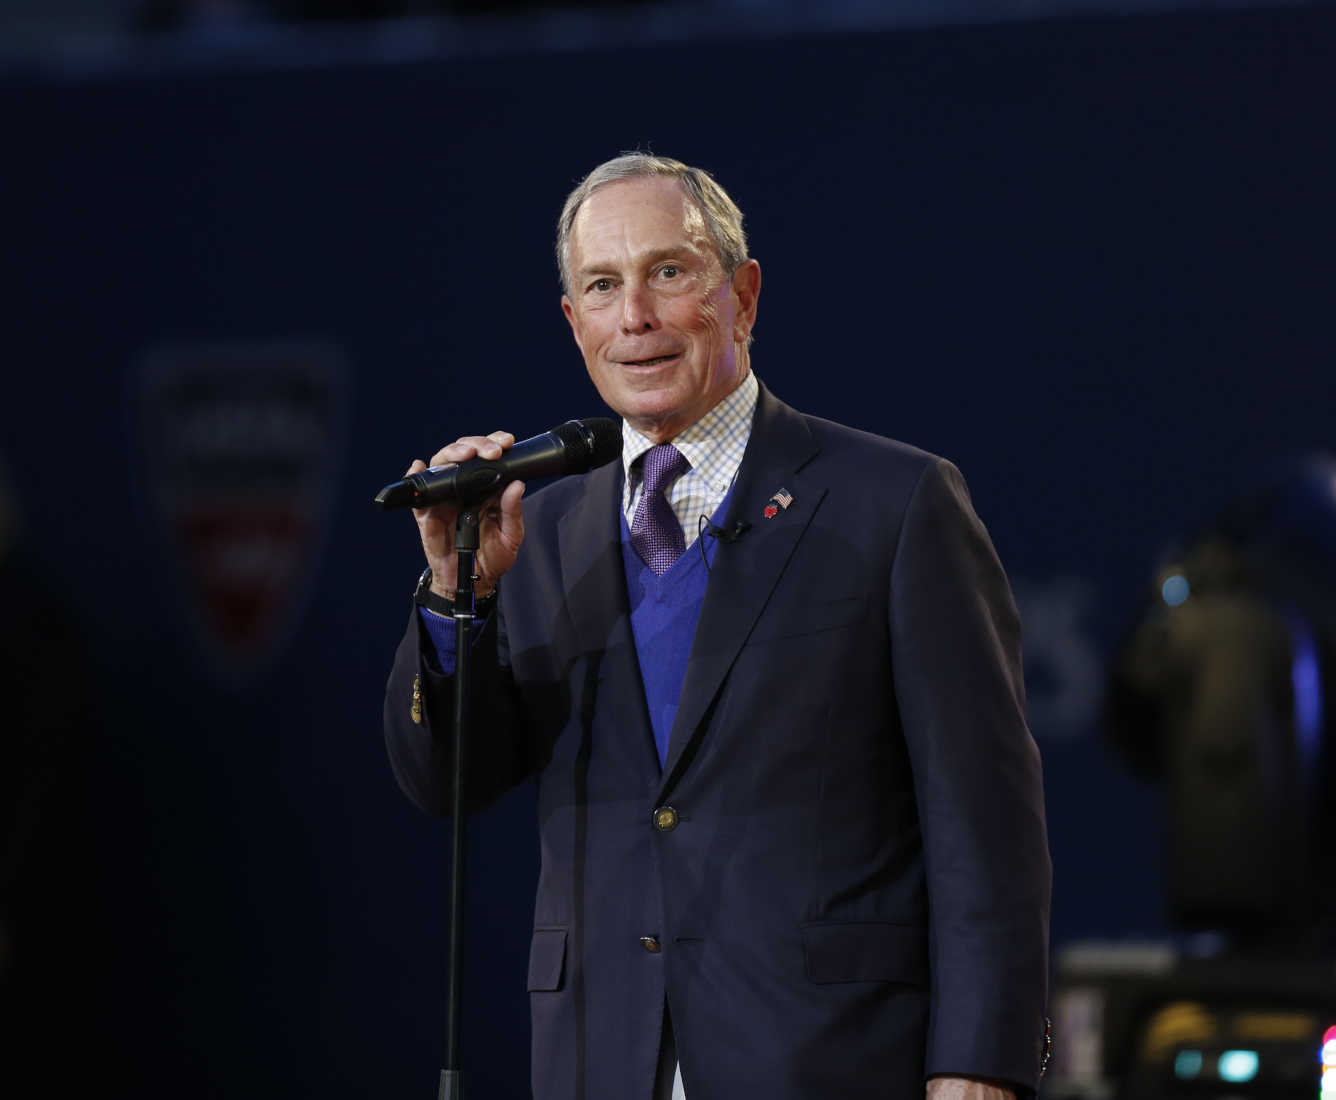 Michael Bloomberg Has Spent Millions to Spread Gun Control – Now He Wants to Be President